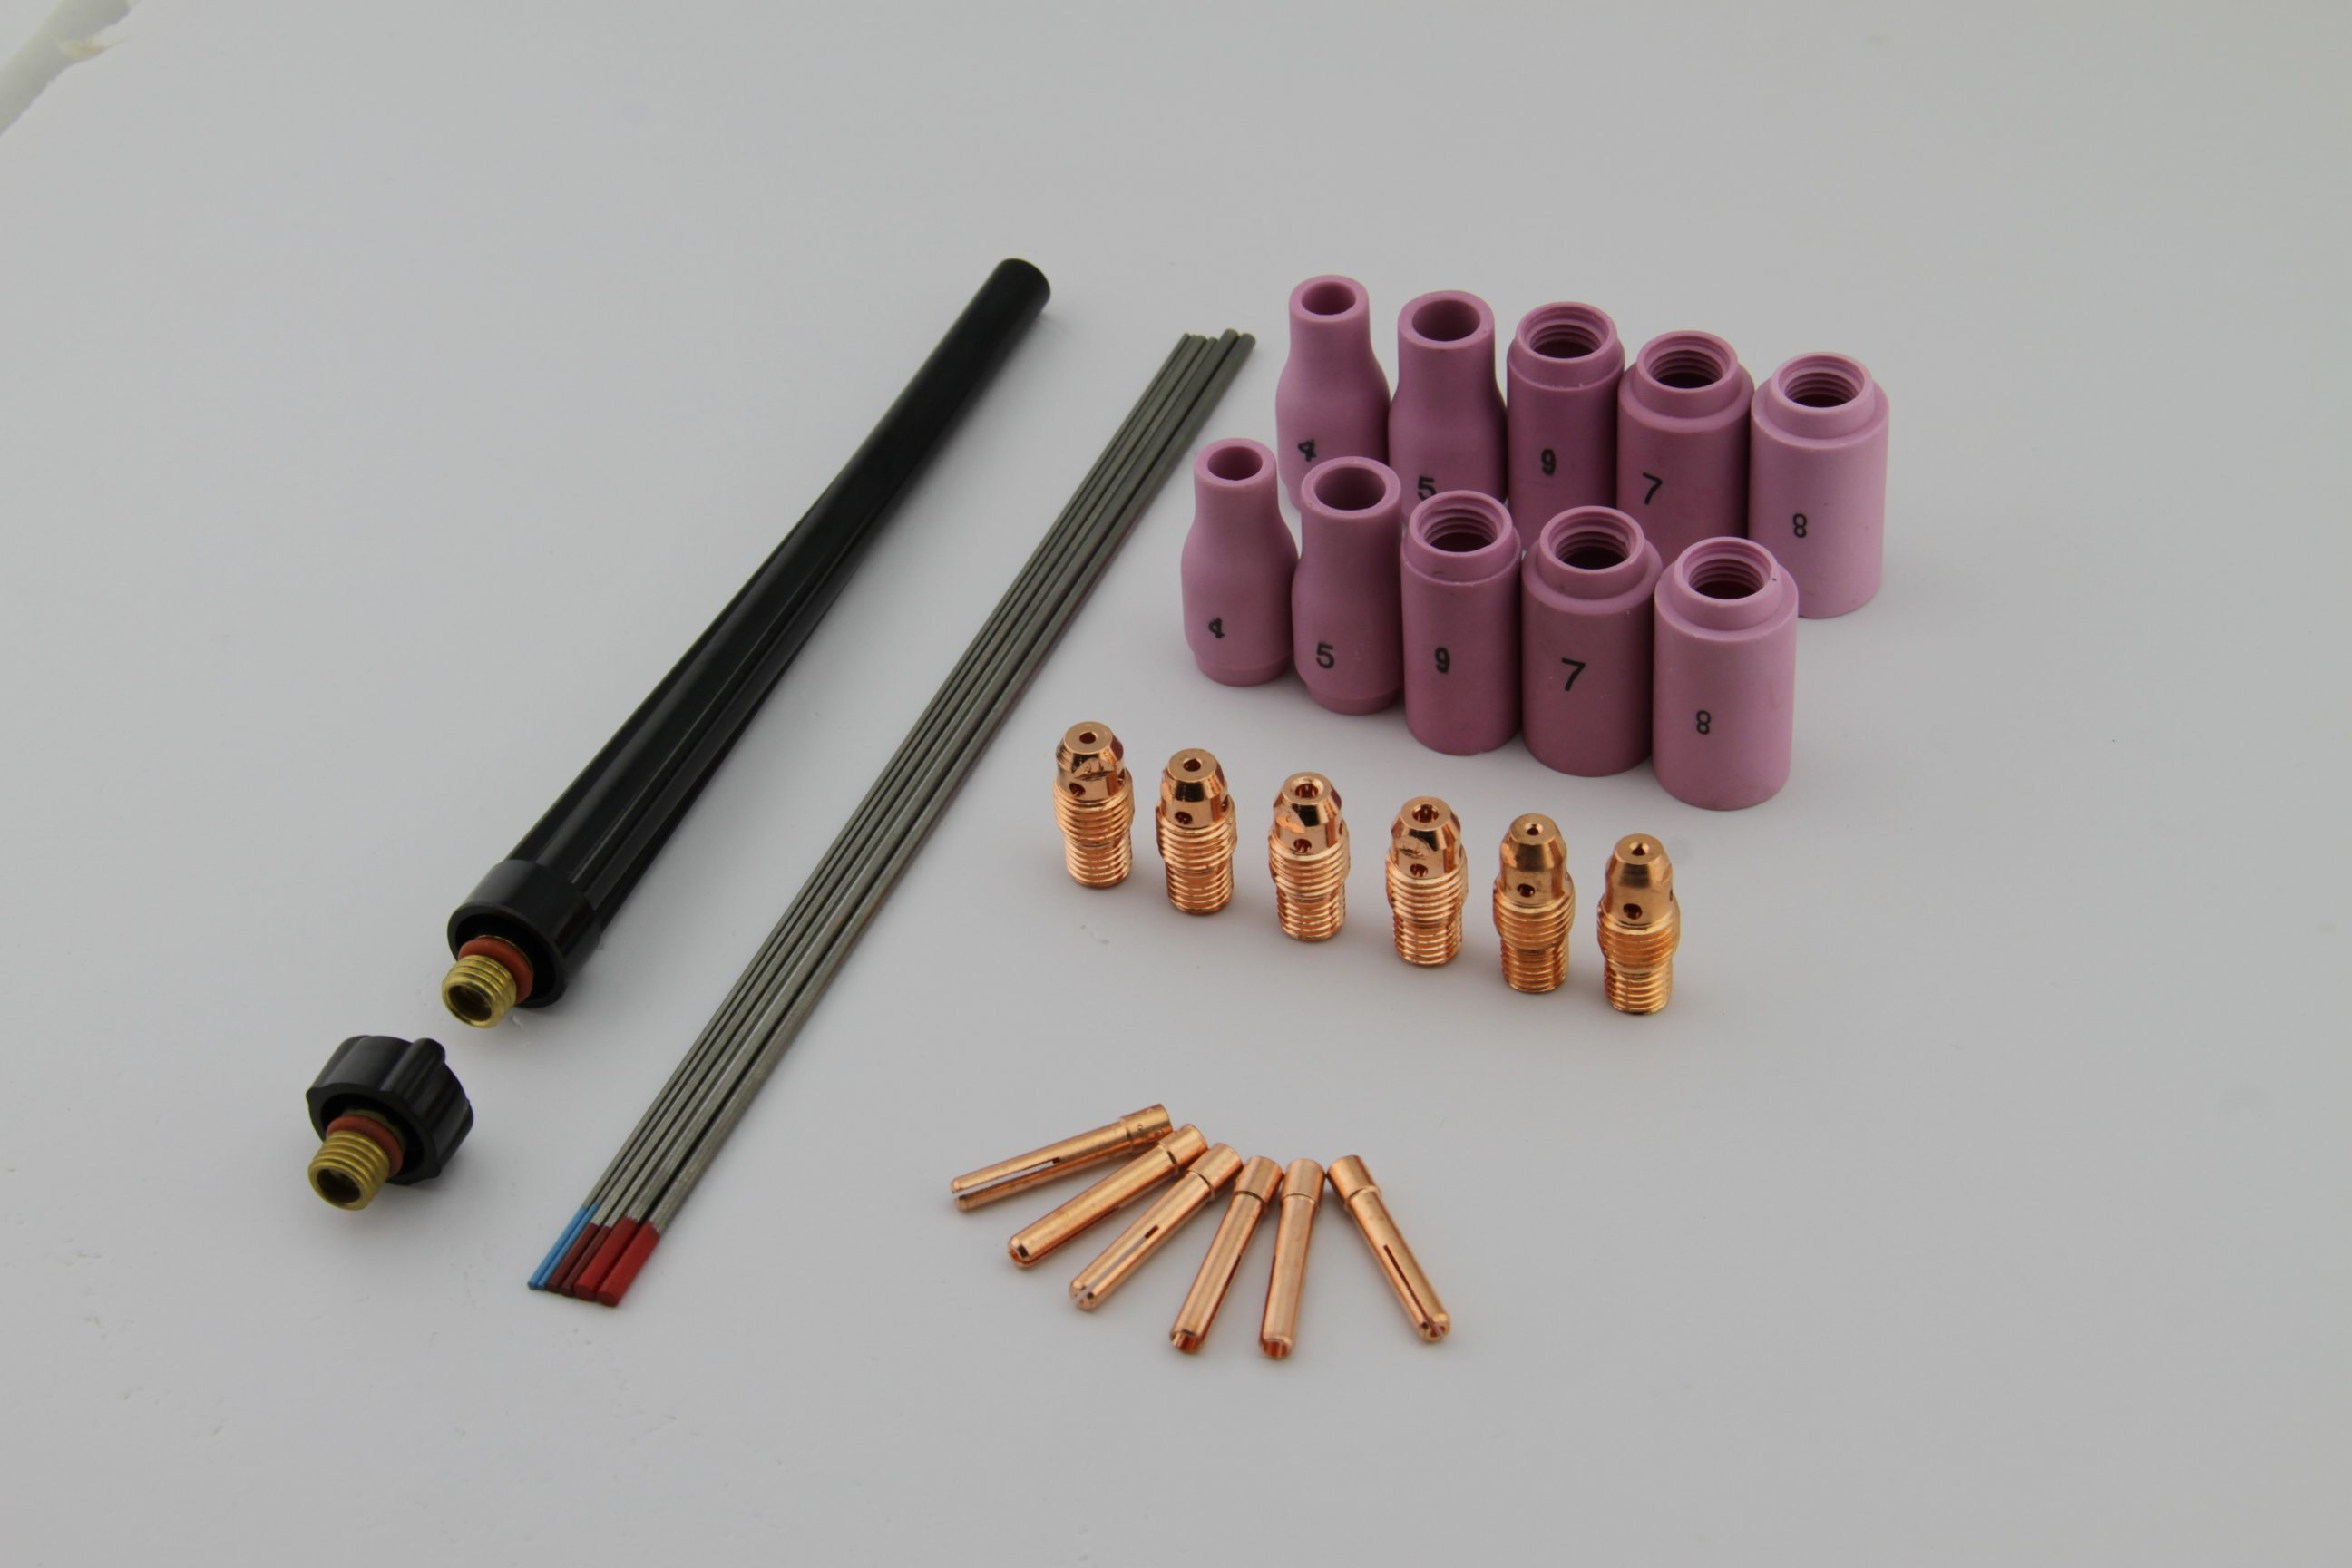 Kingq Wp 20 TIG Welding Torch and Torch Parts with Ce